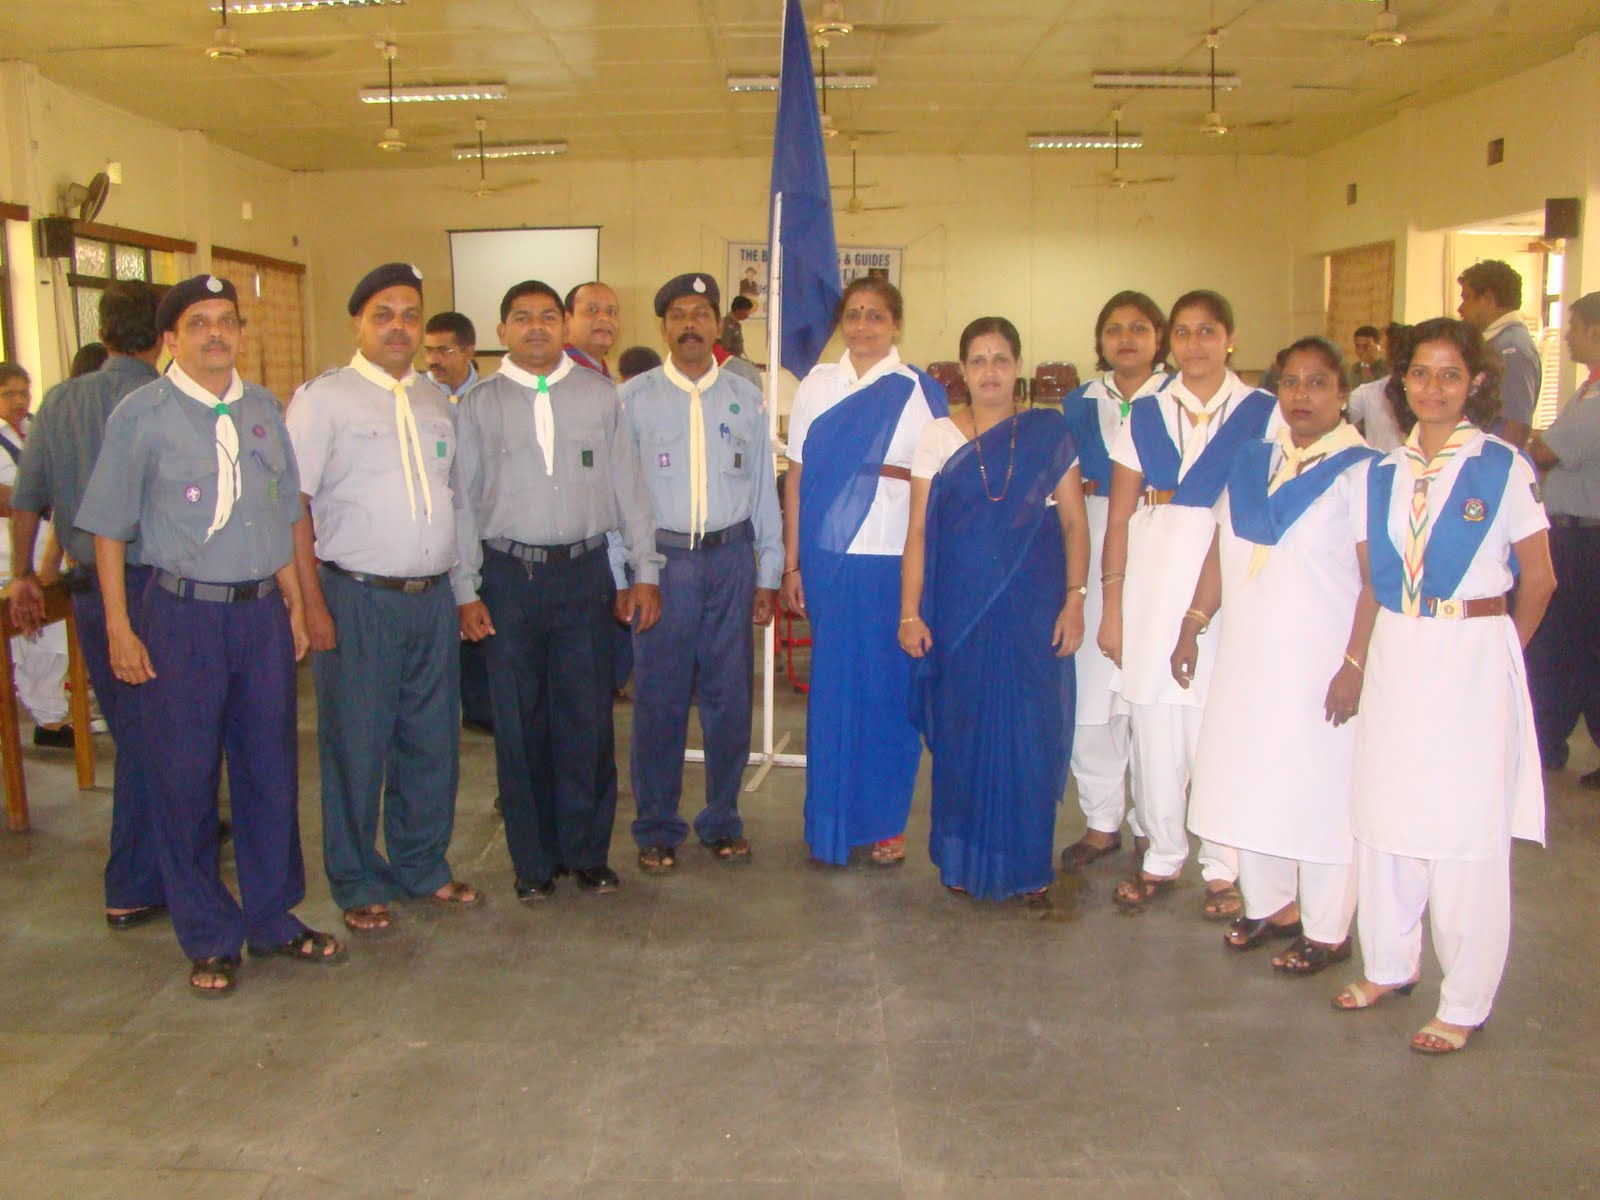 bharat scouts and guides goa state rh bsggoastate blogspot com bharat scouts and guides logbook pravesh bharat scouts and guides logbook in english